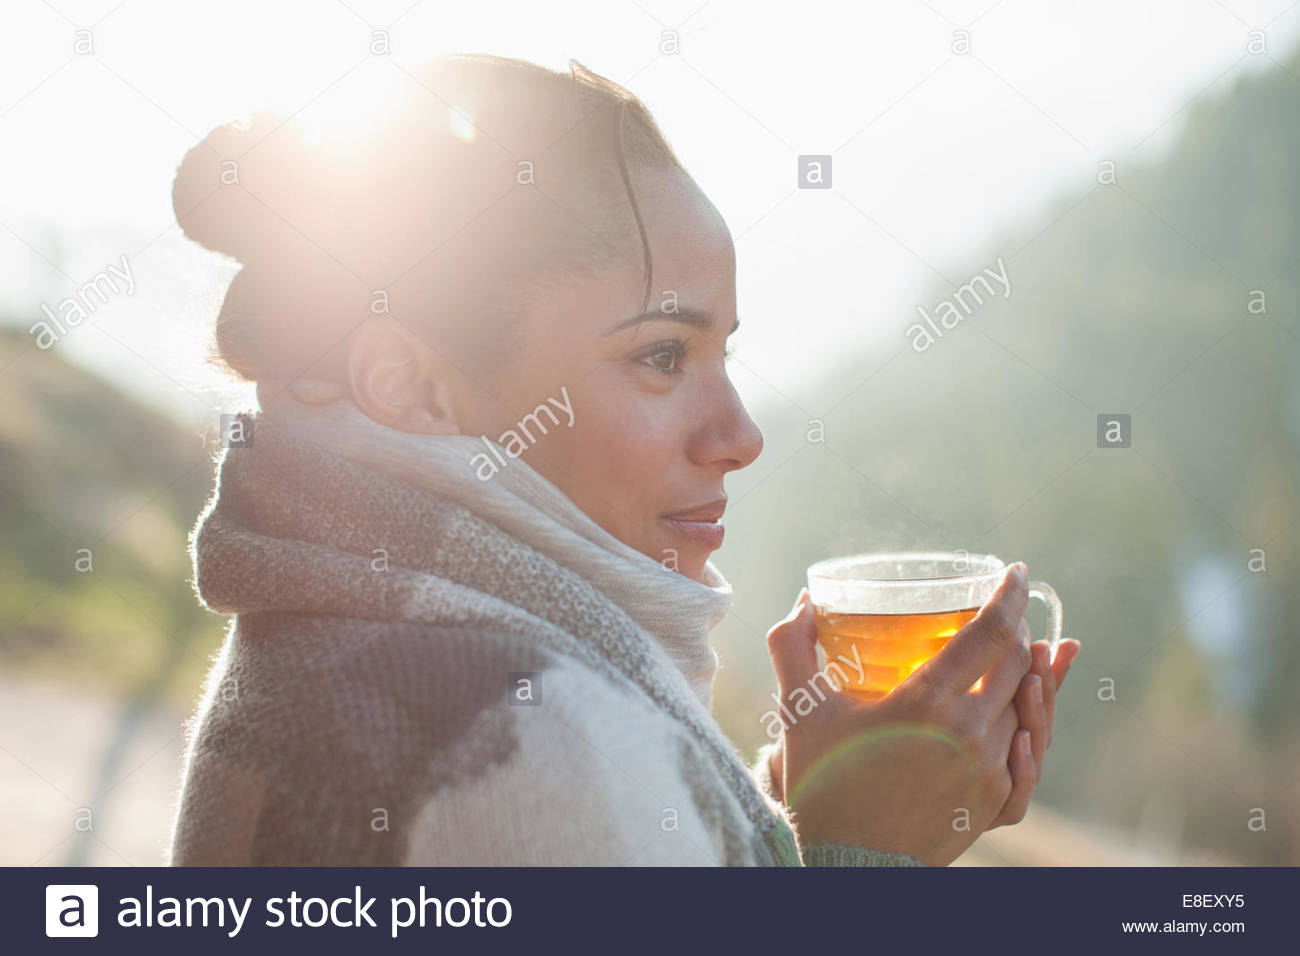 Close up of smiling woman drinking tea outdoors Photo Stock